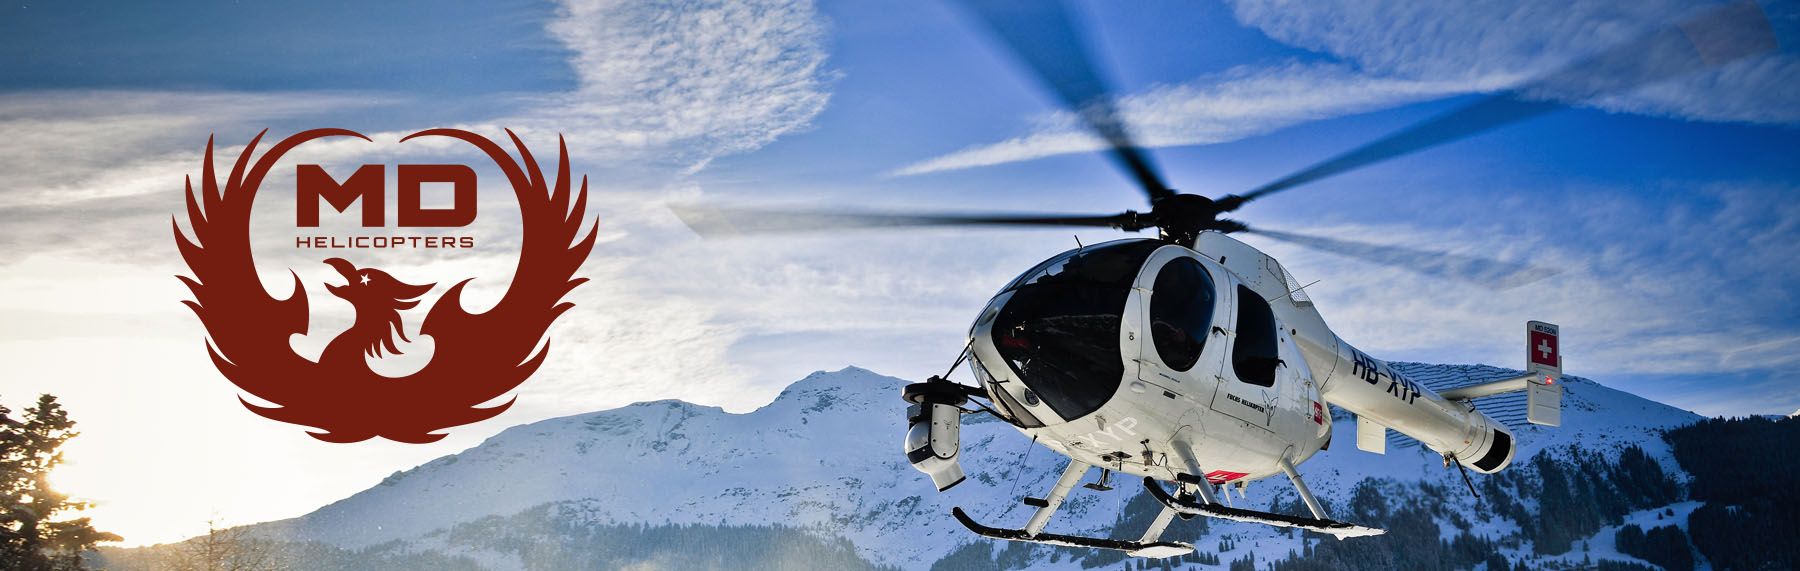 md helicopters patriarch partners